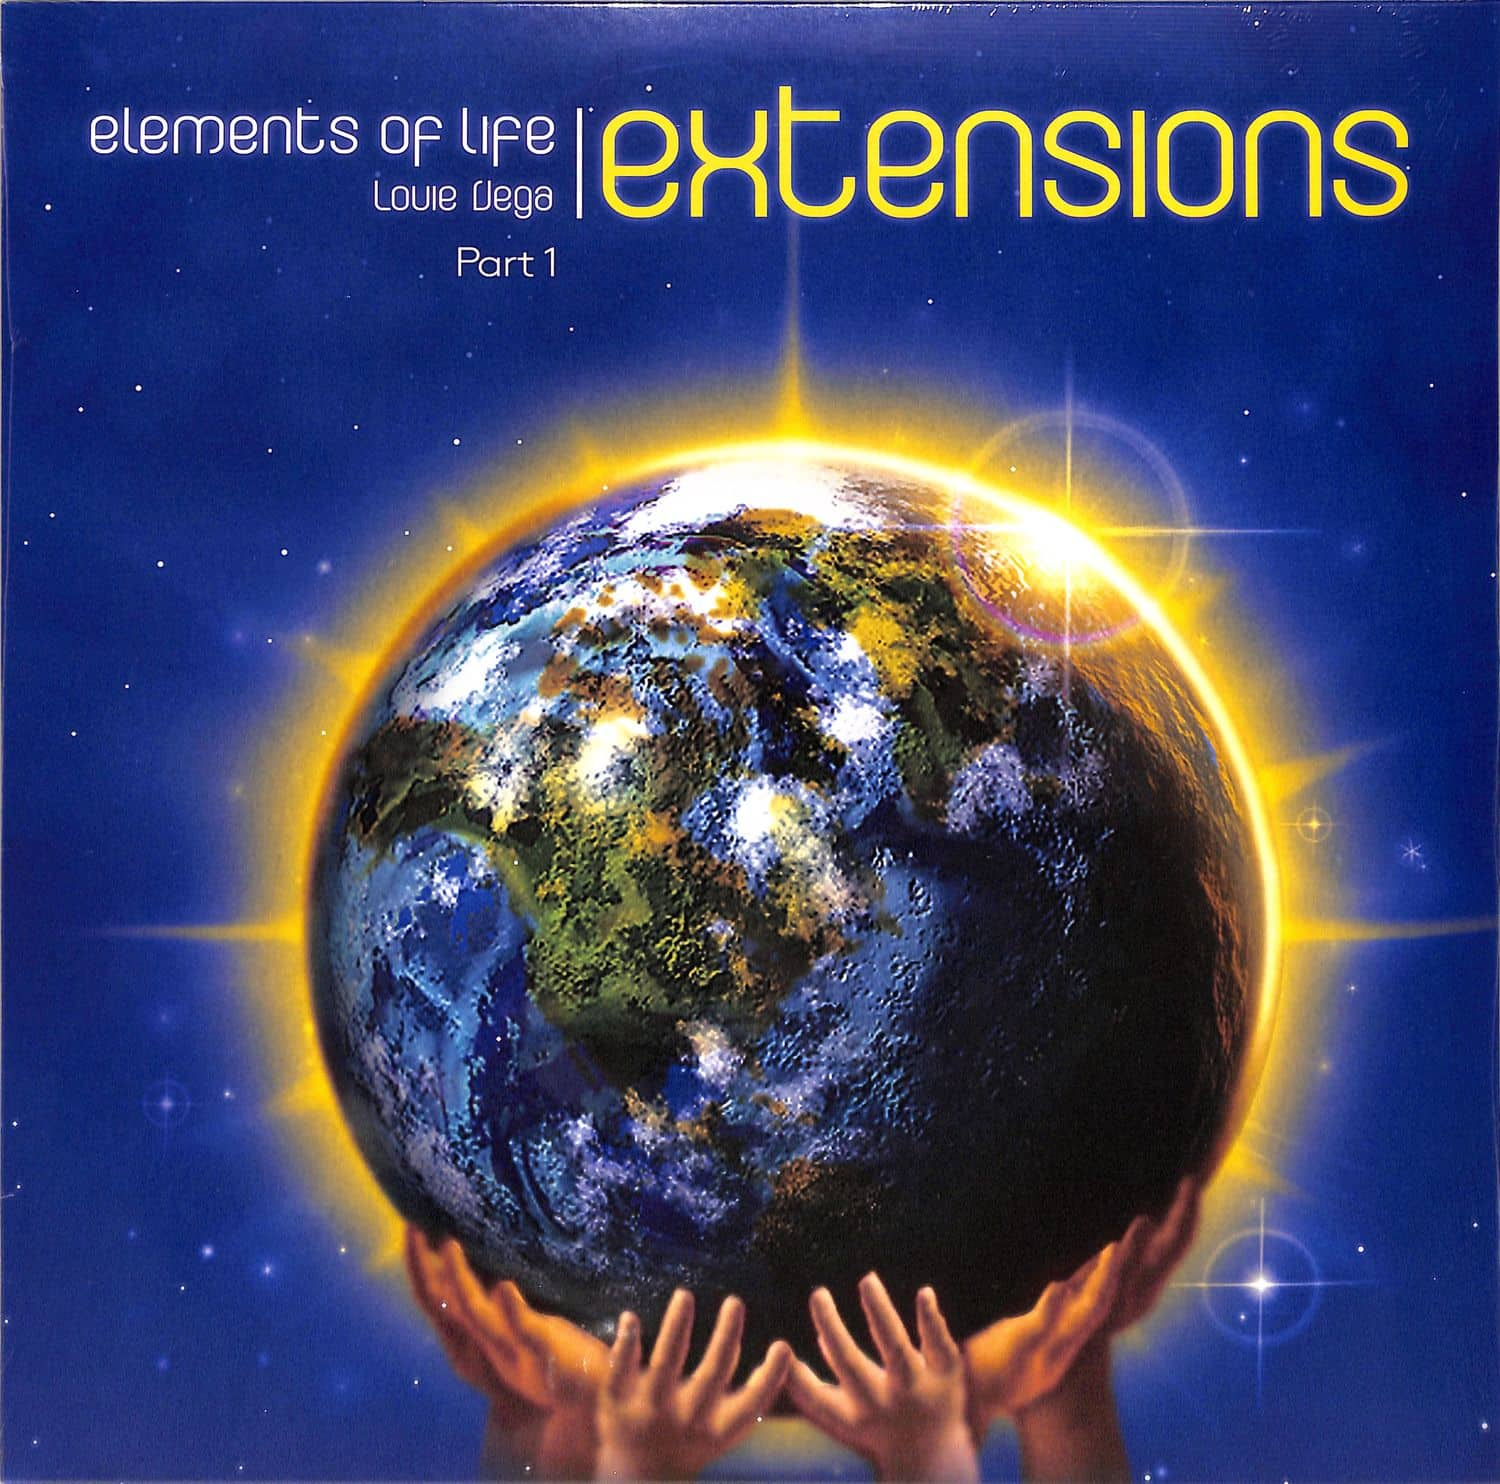 Elements of Life - ELEMENTS OF LIFE - EXTENSIONS PART 1